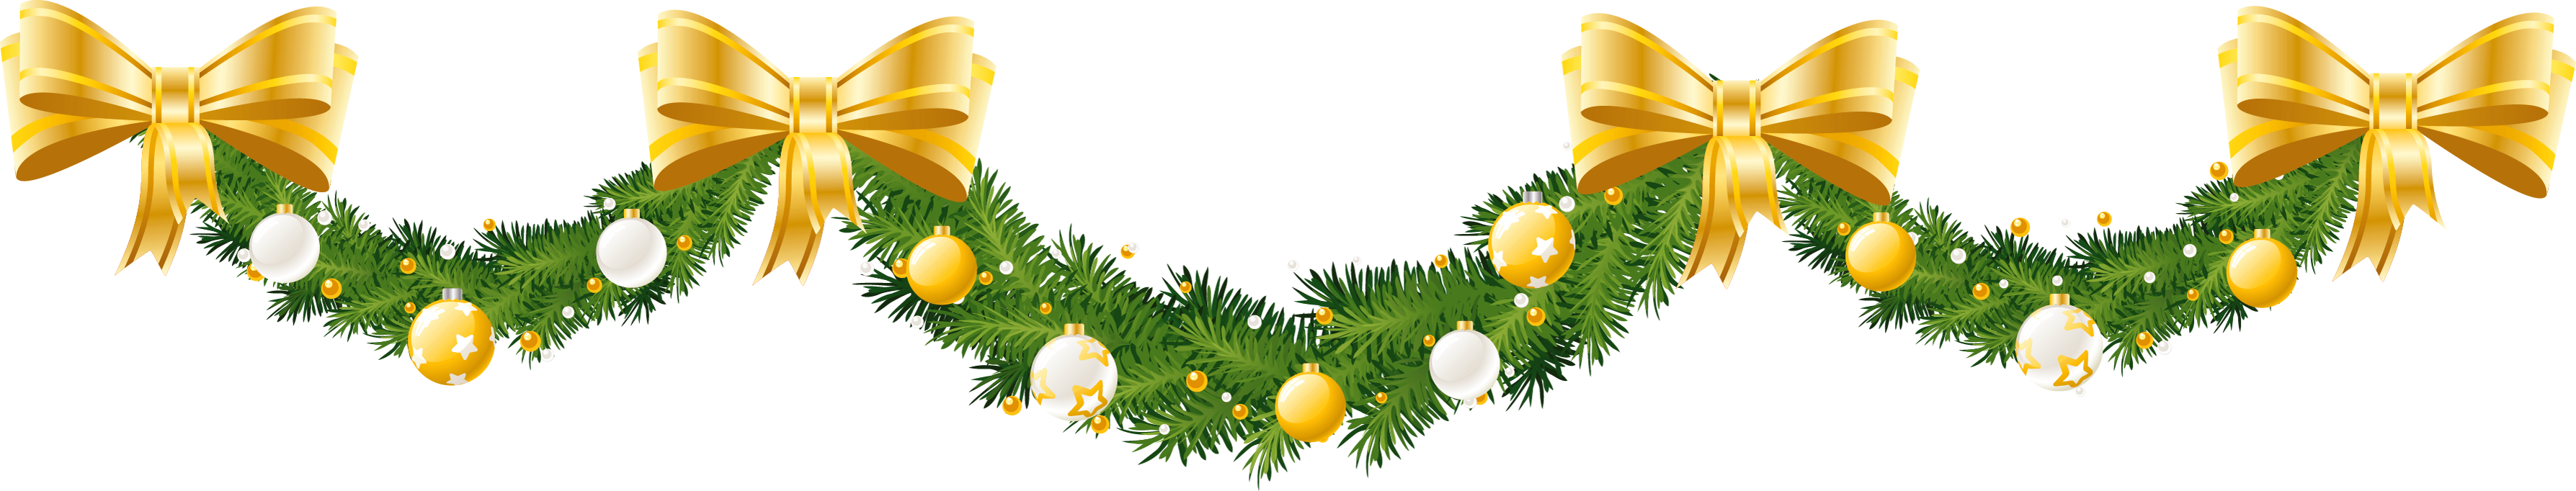 Free clipart christmas garland image freeuse library Clipart Christmas Garland | Clipart Panda - Free Clipart Images image freeuse library